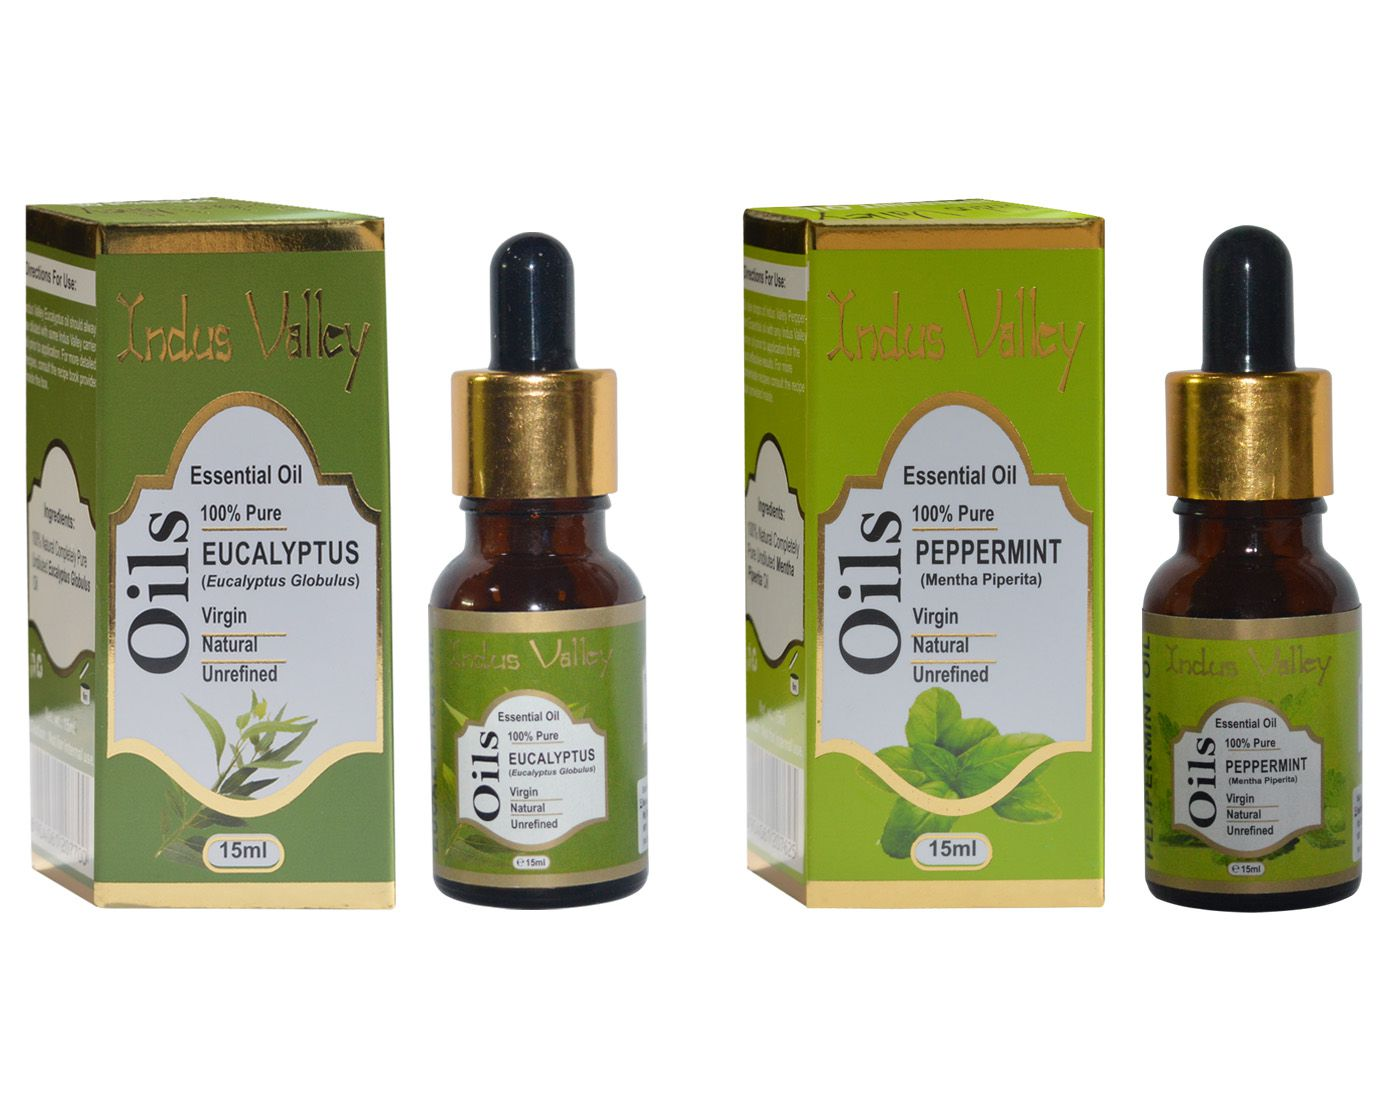 Indus Valley Peppermint And Eucalyptus Essentail Oil Combo For Face, Skin, Hair And Health Treatment- 30 ml